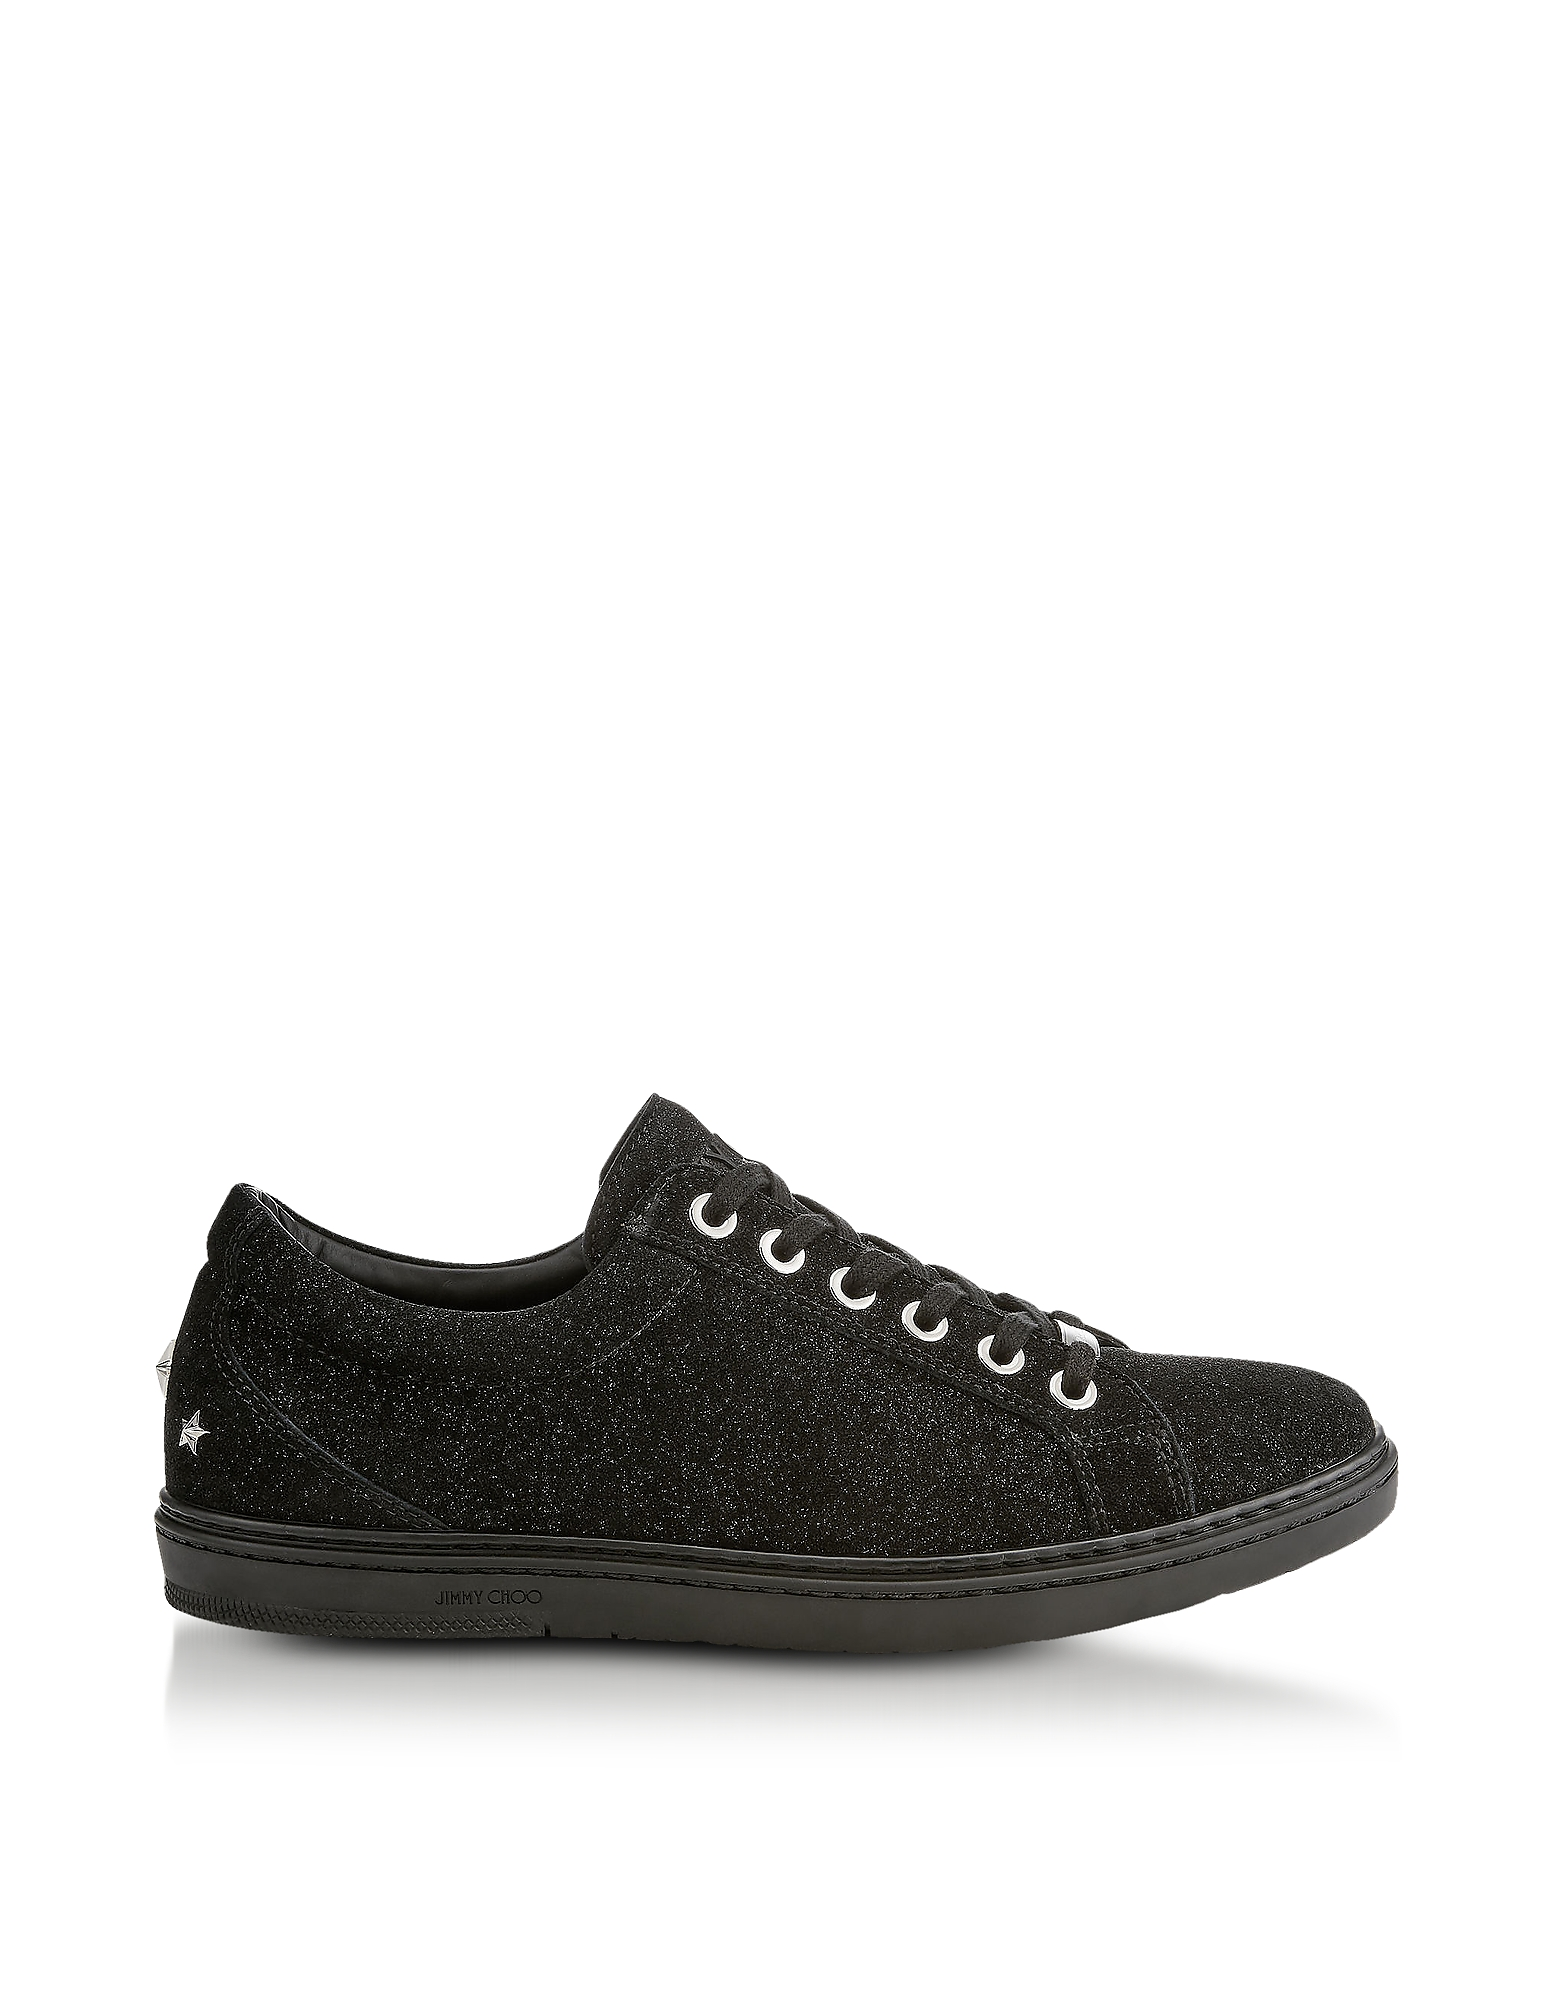 Cash Black Soft Glitter Suede Low Top Trainers